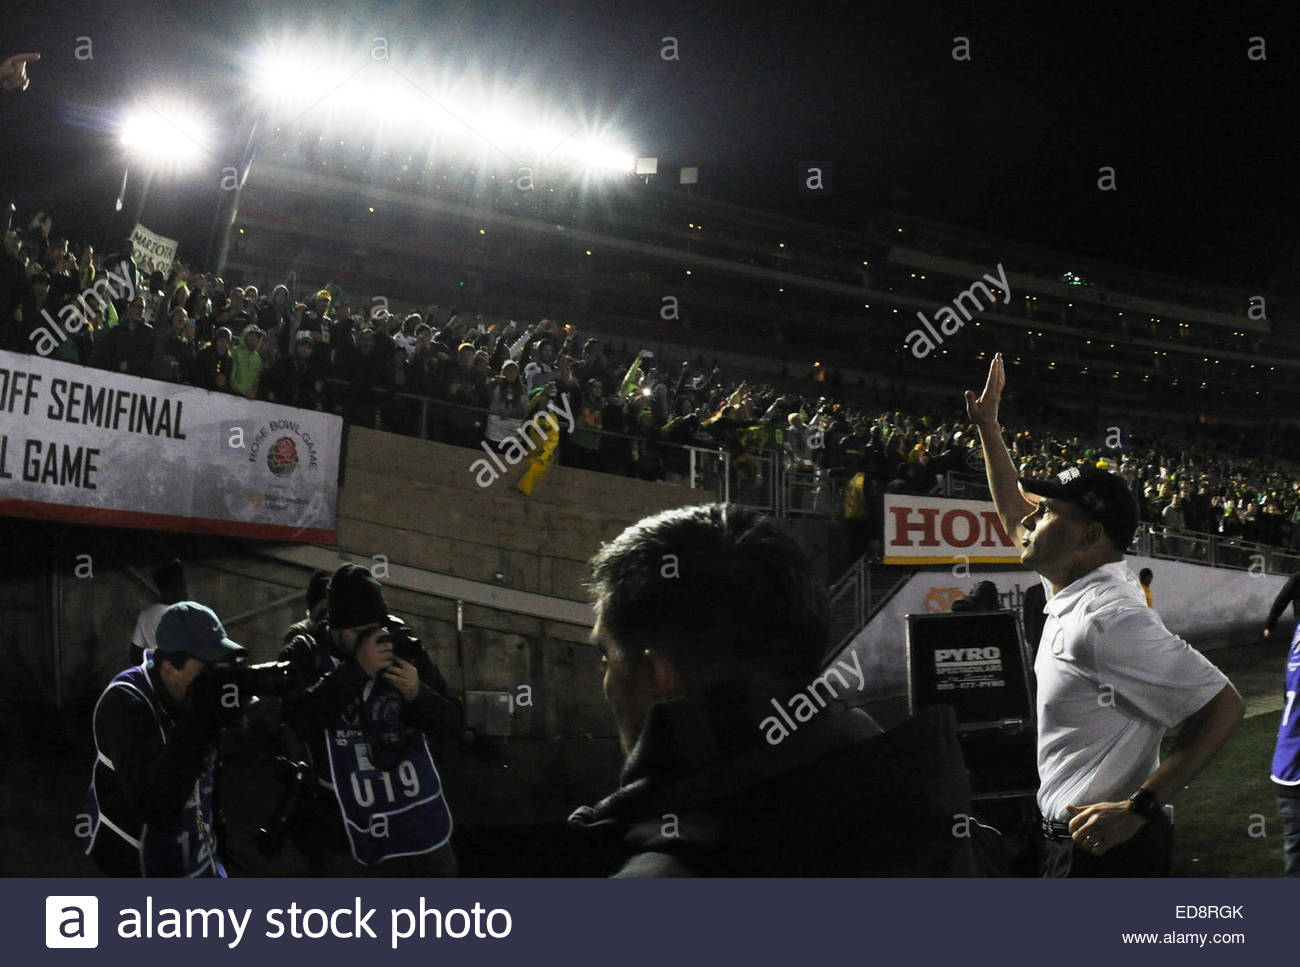 Pasadena, California, USA. 01st Jan, 2015. Oregon Ducks head coach Mark Helfrich waves to the fans after defeating - Stock Image